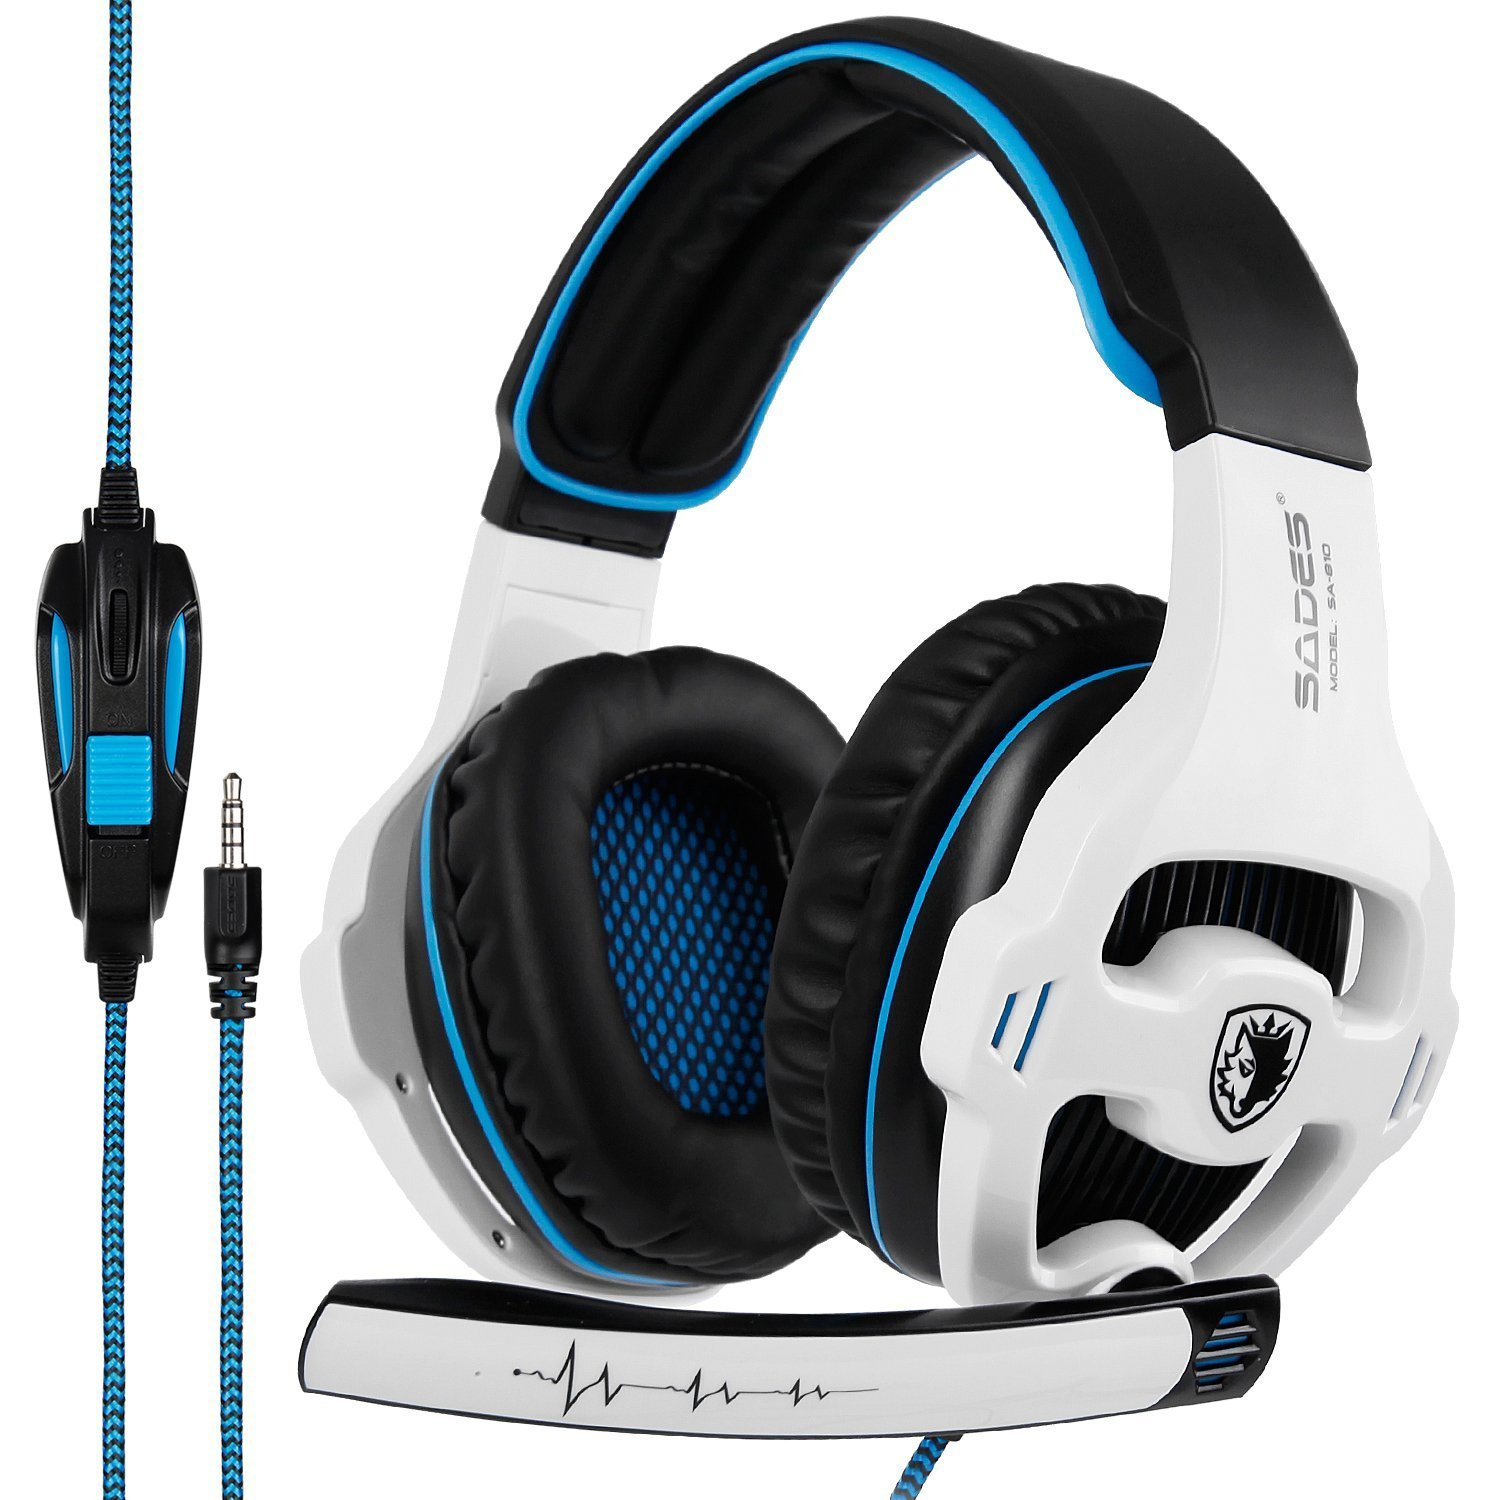 SADES SA810 Xbox one PS4 Stereo Gaming Headset with Mic &Noise Cancelling & Volume Control for New Xbox One/PC / Mac/ PS4/ Table/Phone